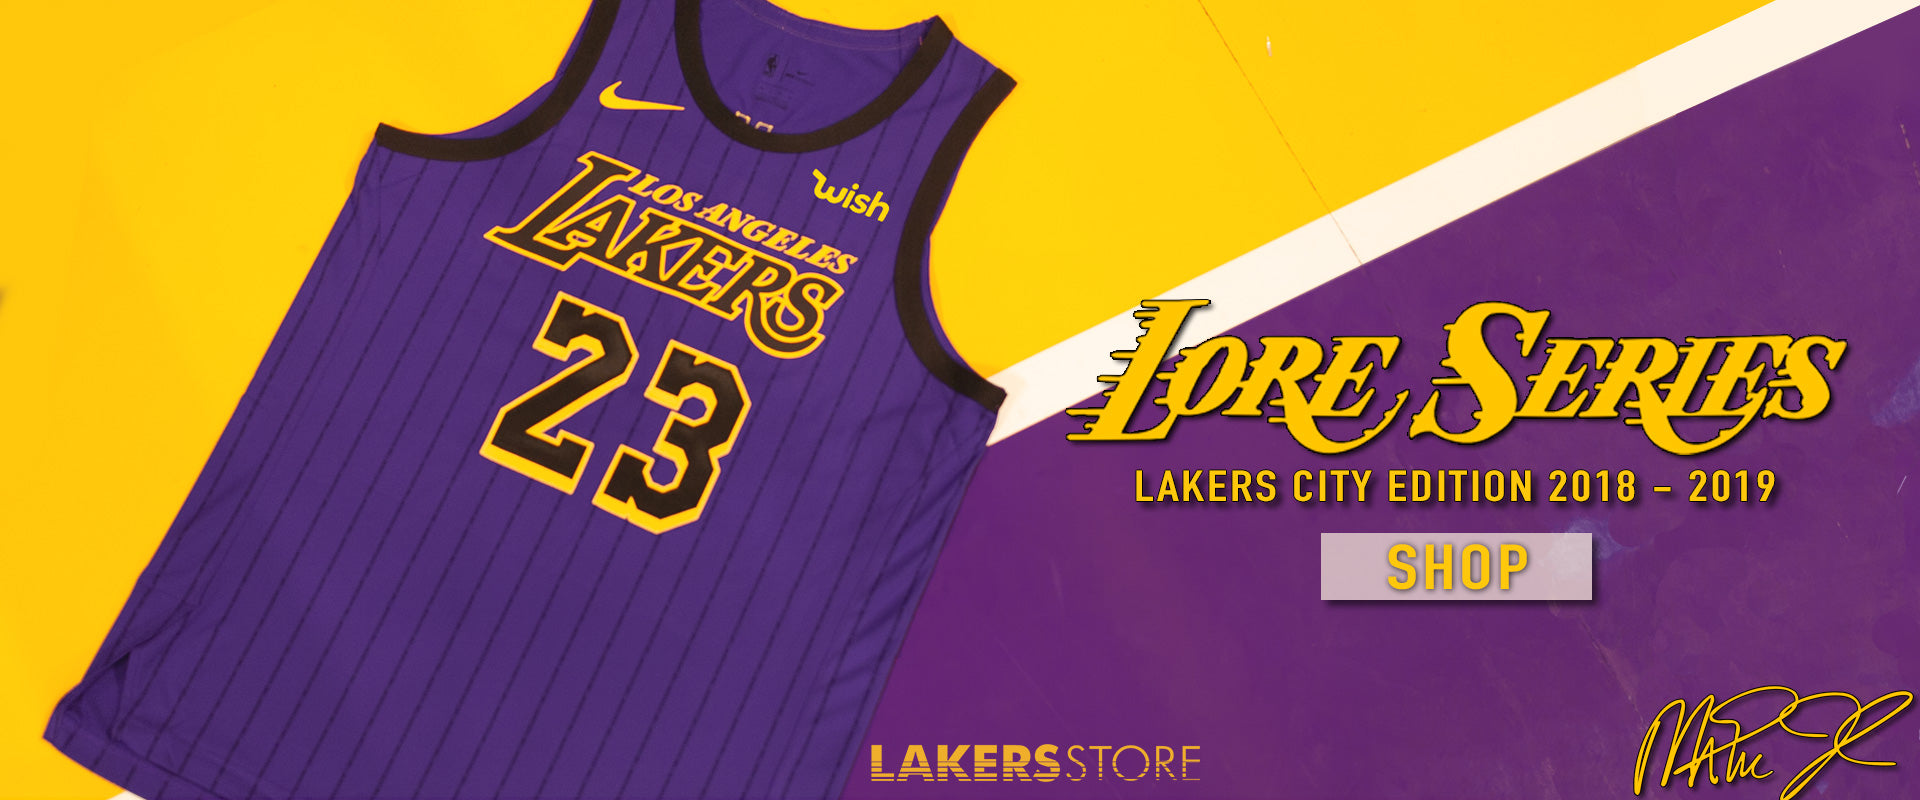 662e7f889 2018-19 City Edition Collection – Lakers Store